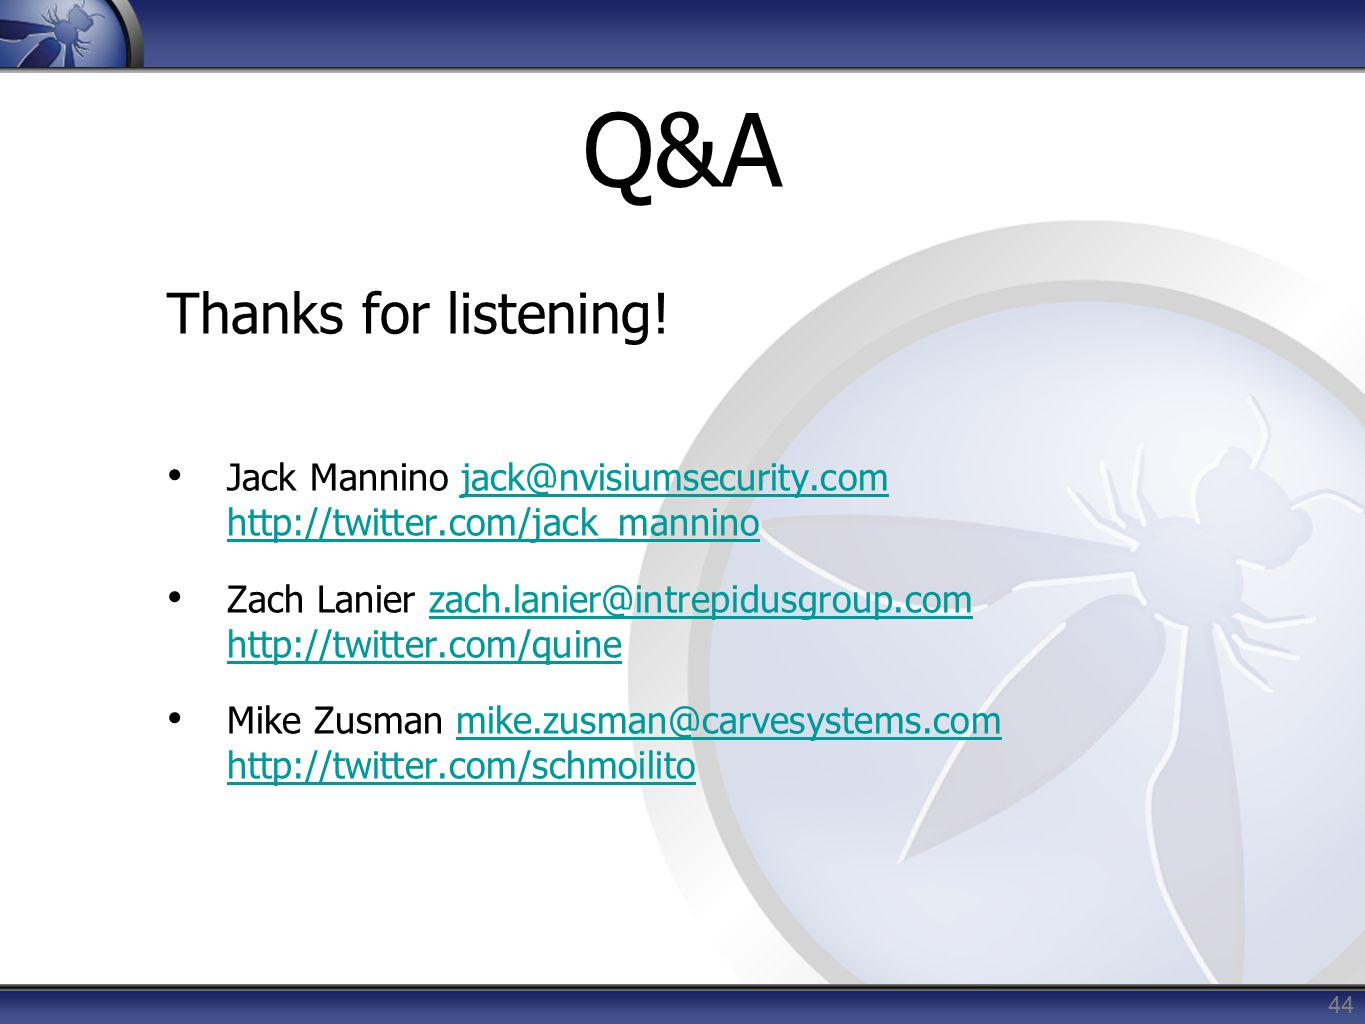 44 Q&A Thanks for listening! Jack Mannino jack@nvisiumsecurity.com http://twitter.com/jack_manninojack@nvisiumsecurity.com http://twitter.com/jack_man